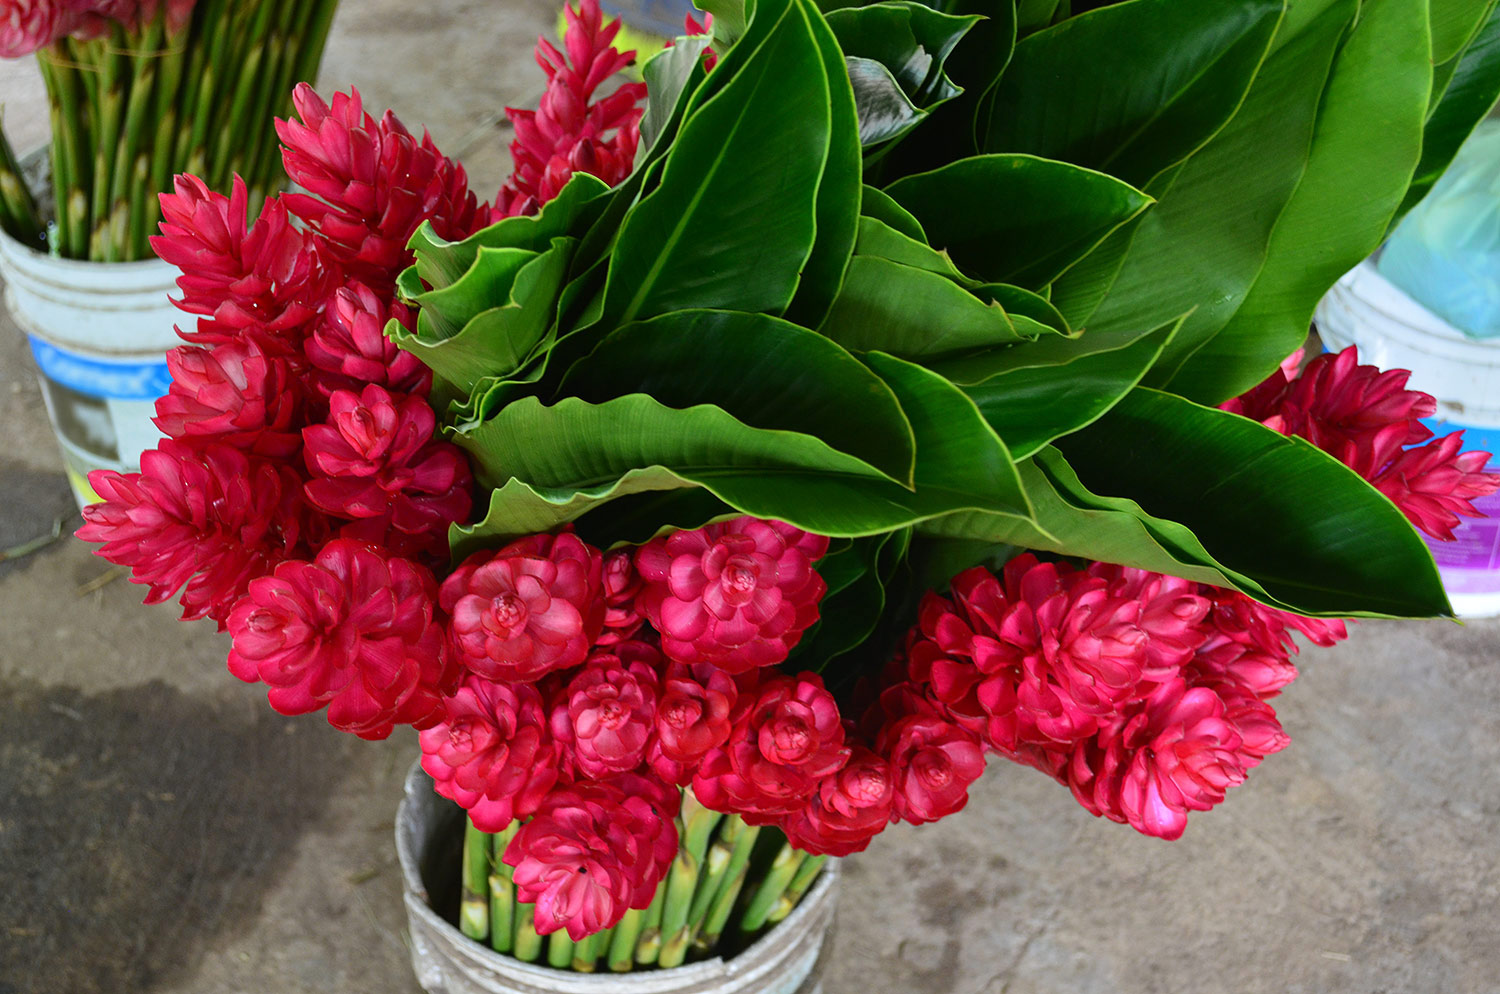 A bouquet of ginger flowers. Tropical flowers, Mexico.